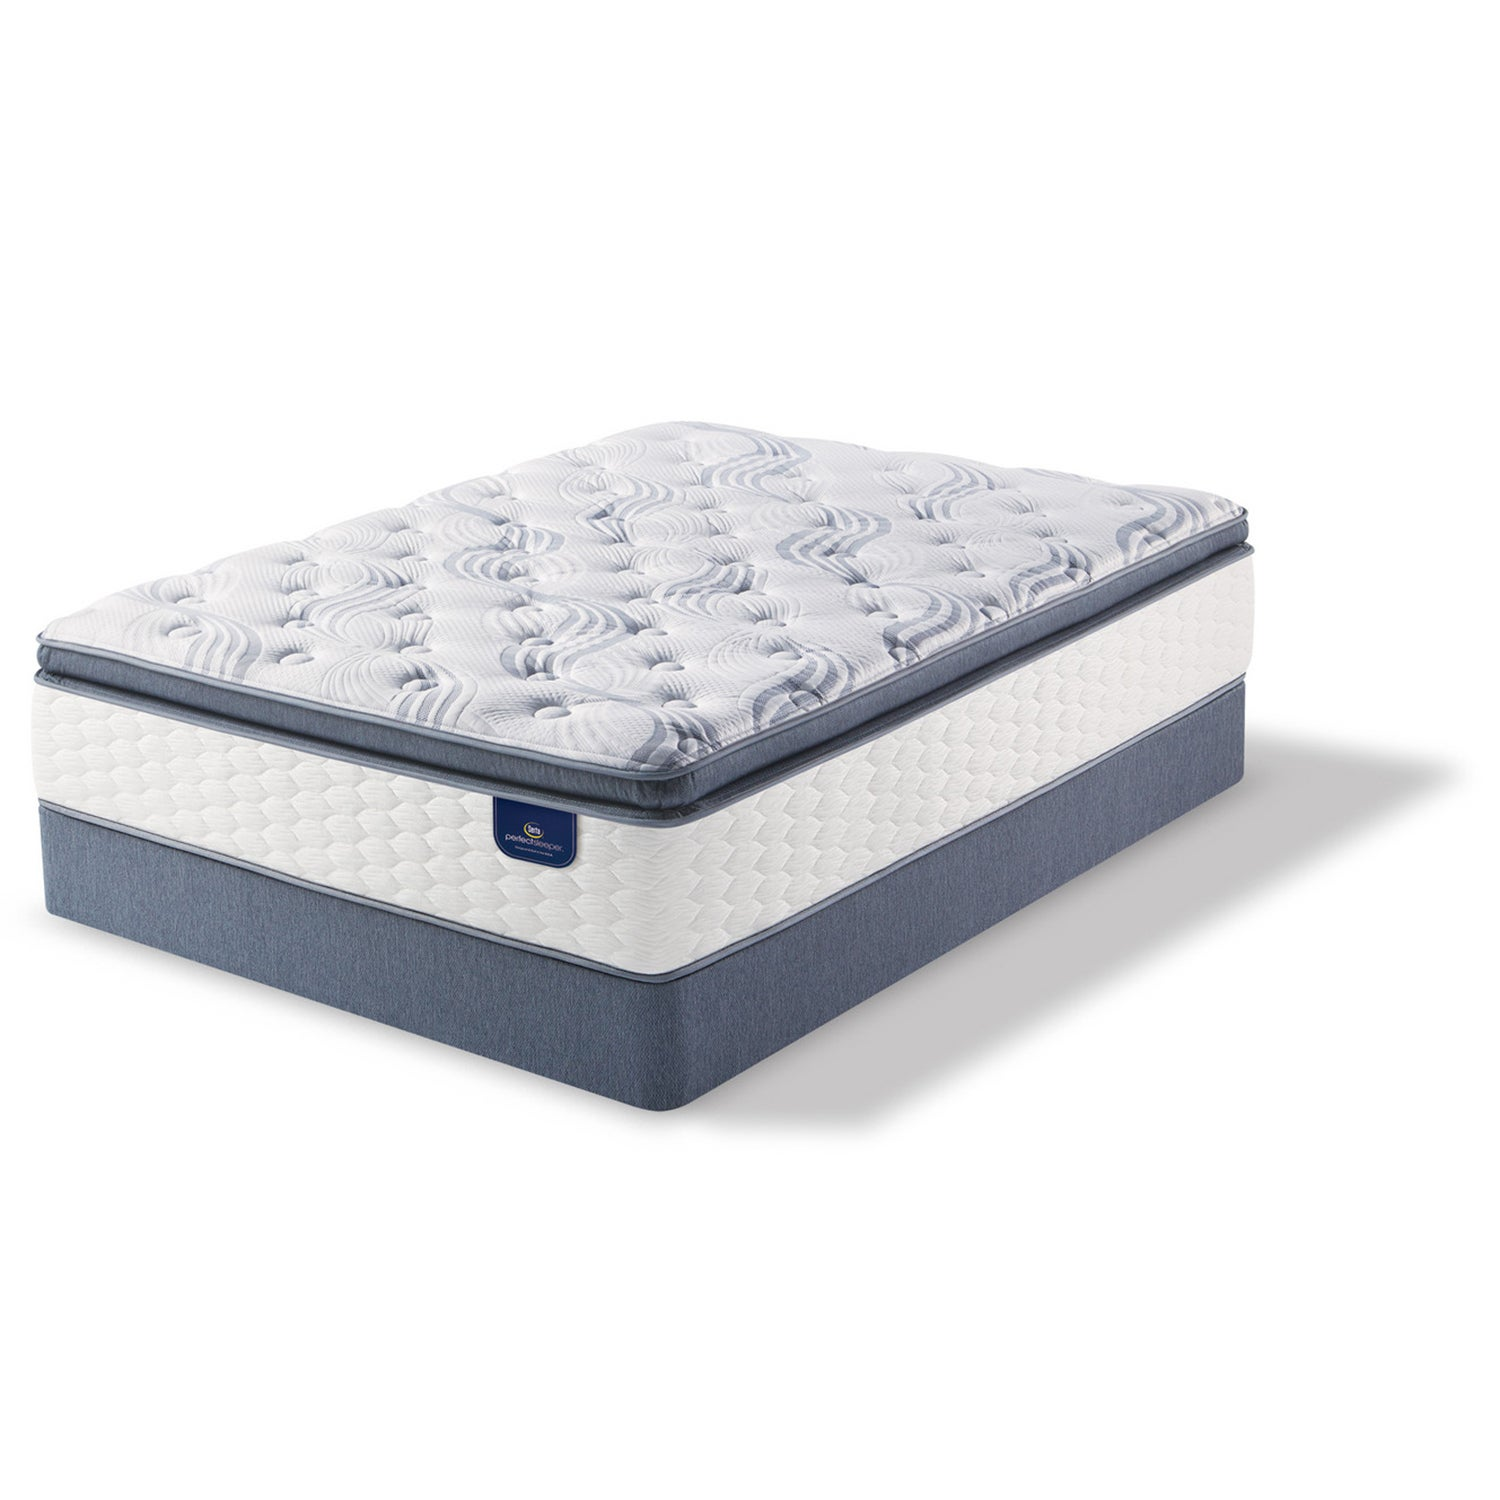 wayfair topper mattress medium reviews recharge pillow beautyrest pdx top mattresses simmons